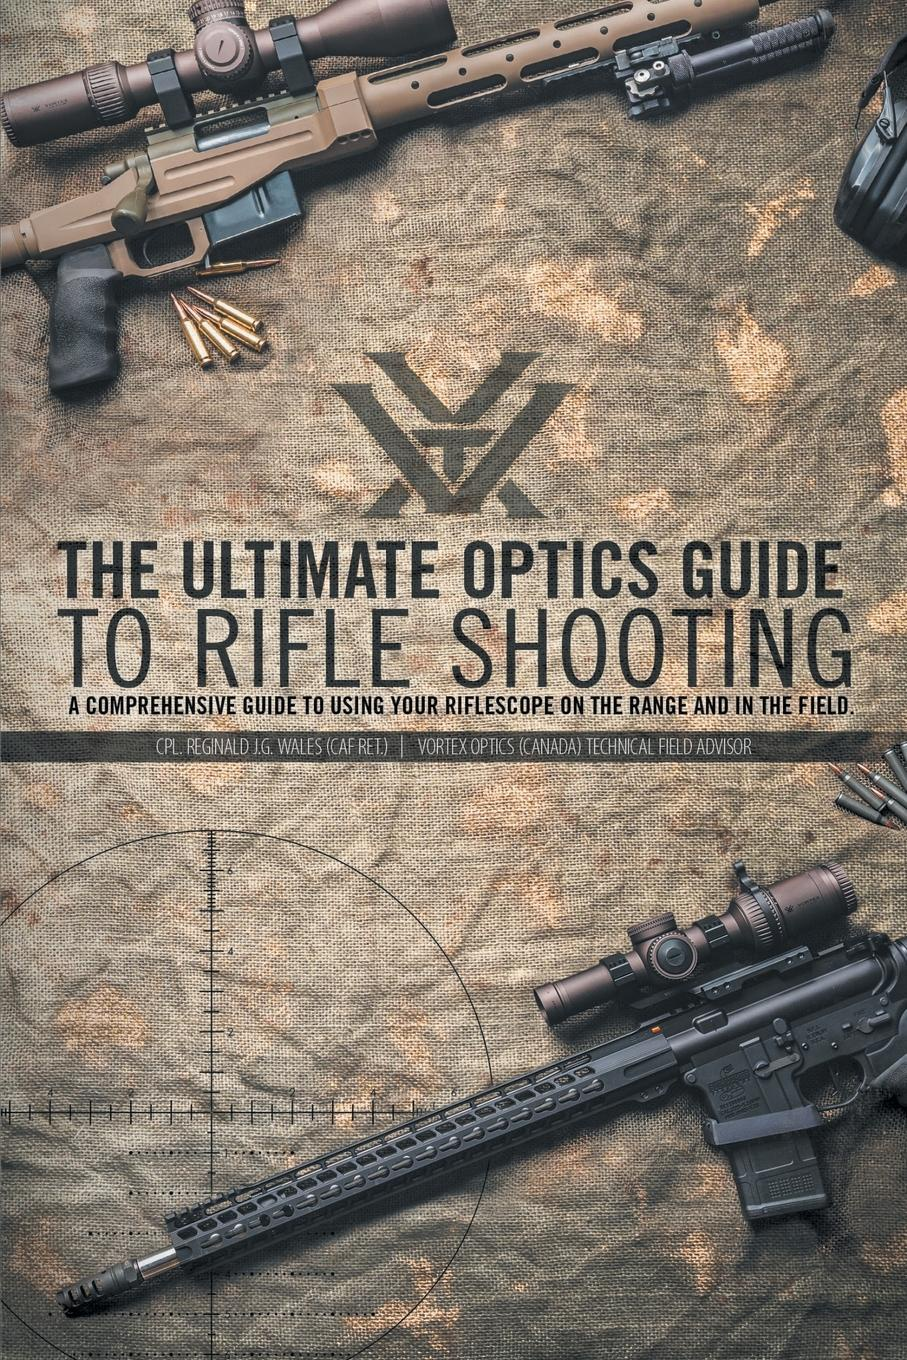 CPL. Reginald J.G. Wales The Ultimate Optics Guide to Rifle Shooting. A Comprehensive Guide to Using Your Riflescope on the Range and in the Field hunting green dot illuminated laser tactical optics sight rifle airsoft air guns scopes sight green dot rifle scope laser